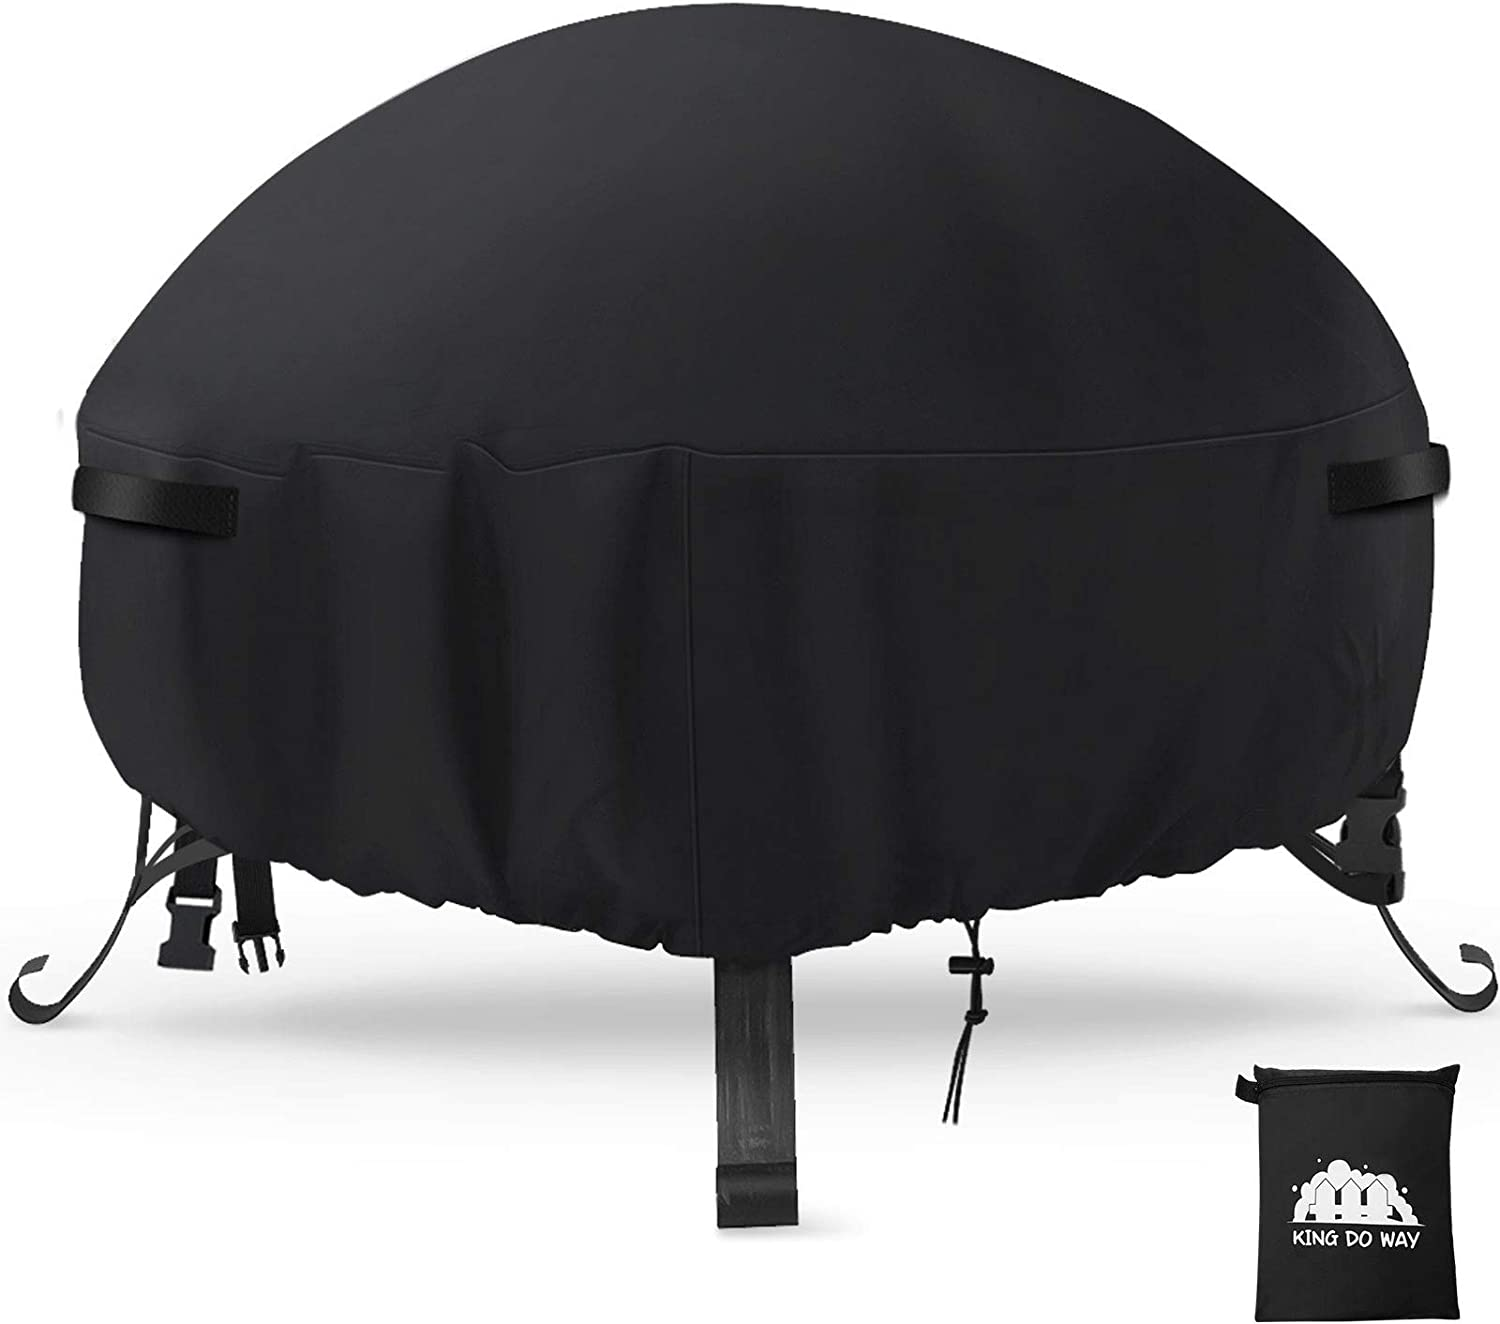 king do way Fire Pit Cover with 2Handle and 2Buckles Waterproof Anti-Crack Fade-Resistant Heavy Duty Outdoor Round Patio Firepit Furniture Cover 38'' L x 38'' W x 22'' H